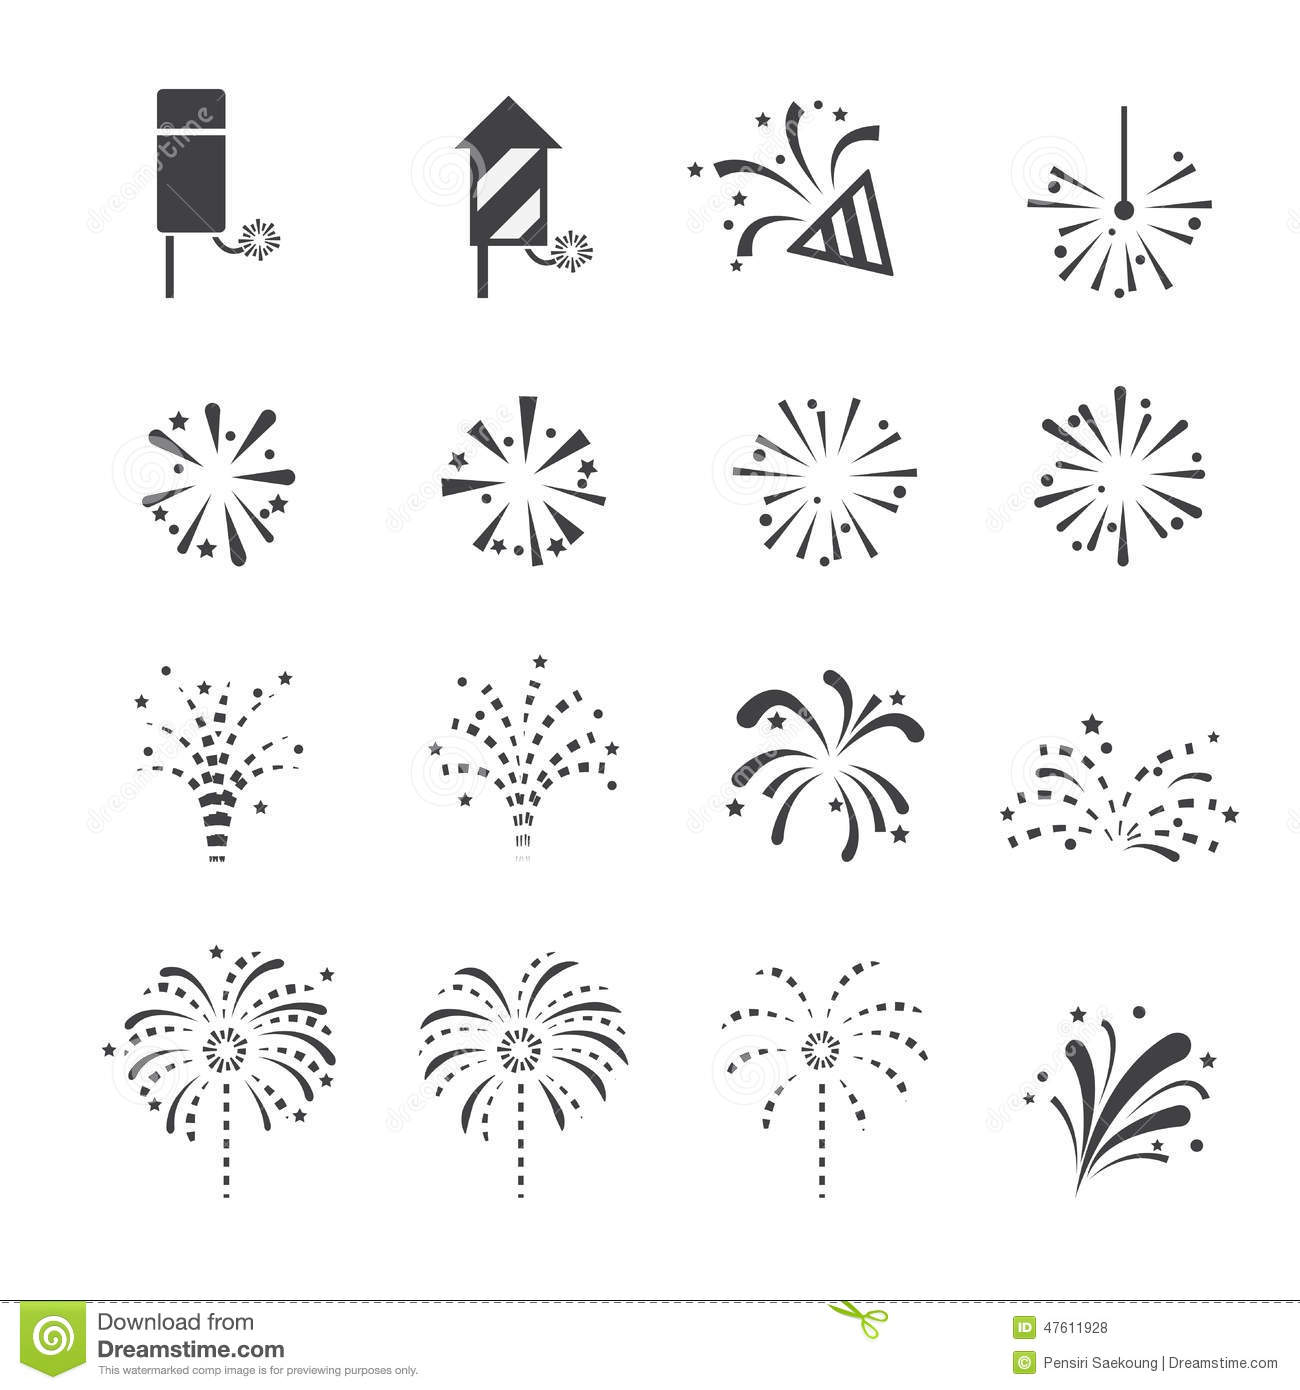 Vector Illustration Web Designs: Fireworks Icon Stock Vector. Image Of Black, Party